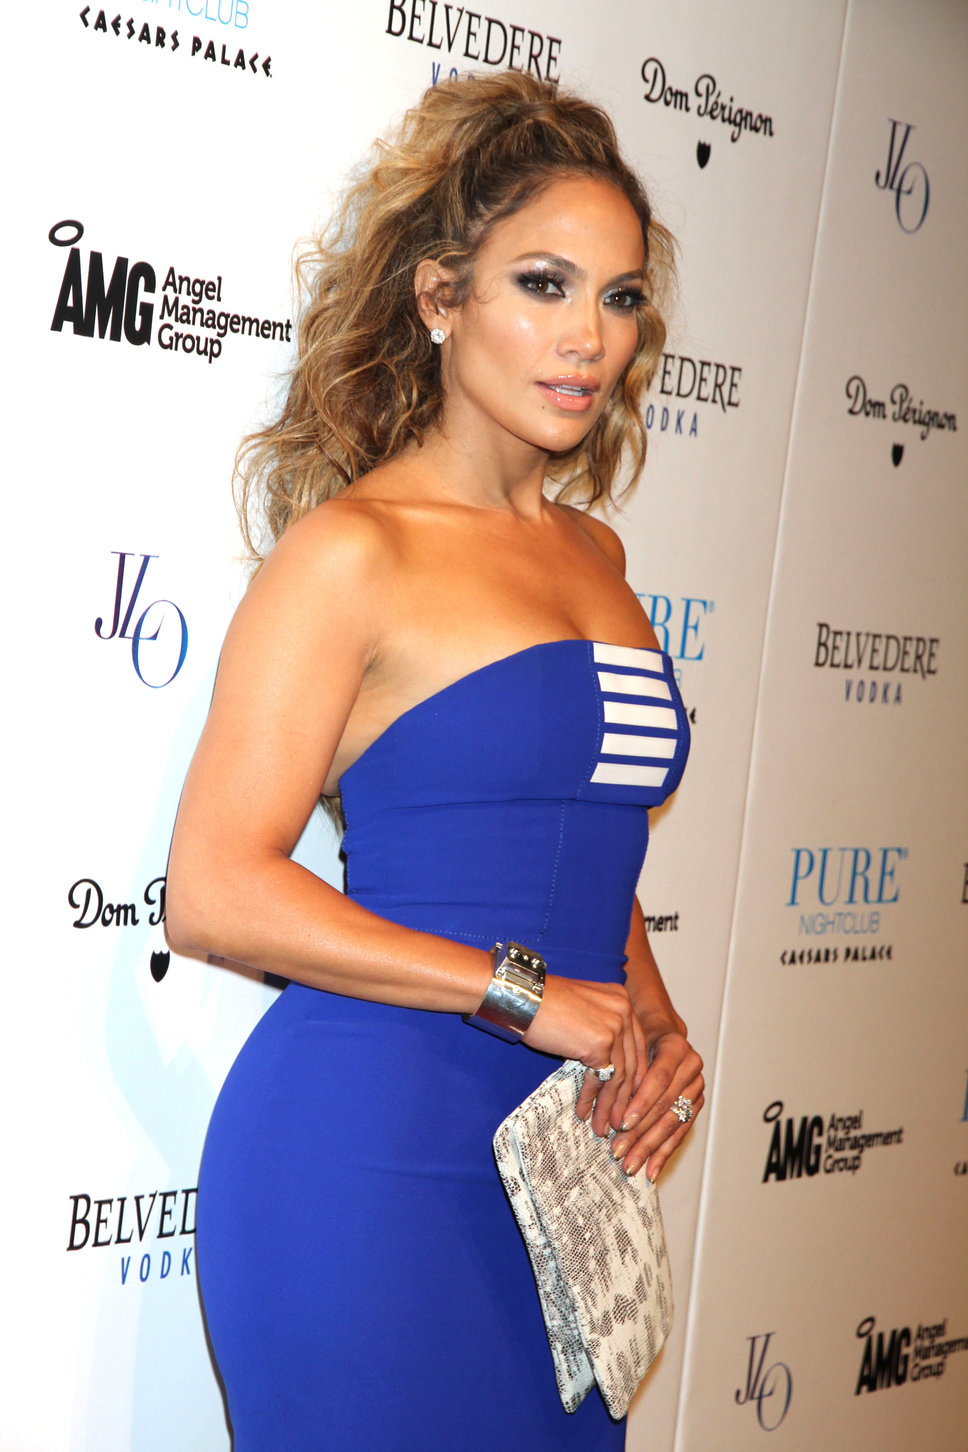 blogspotcom jennifer lopez - photo #34